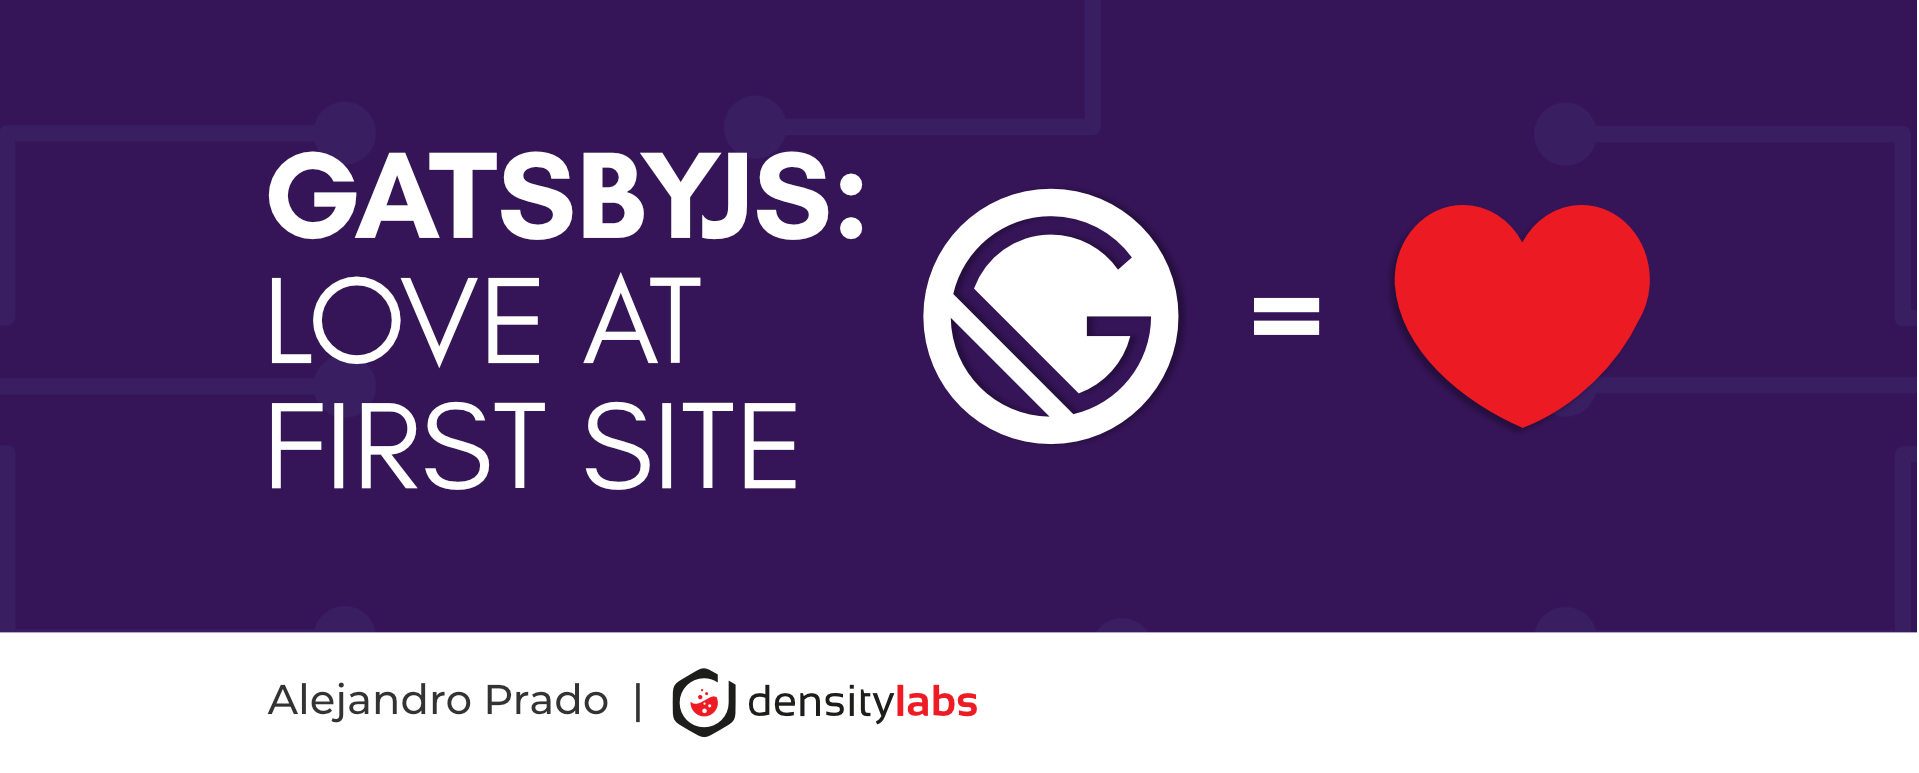 GatsbyJS: Love at First Site